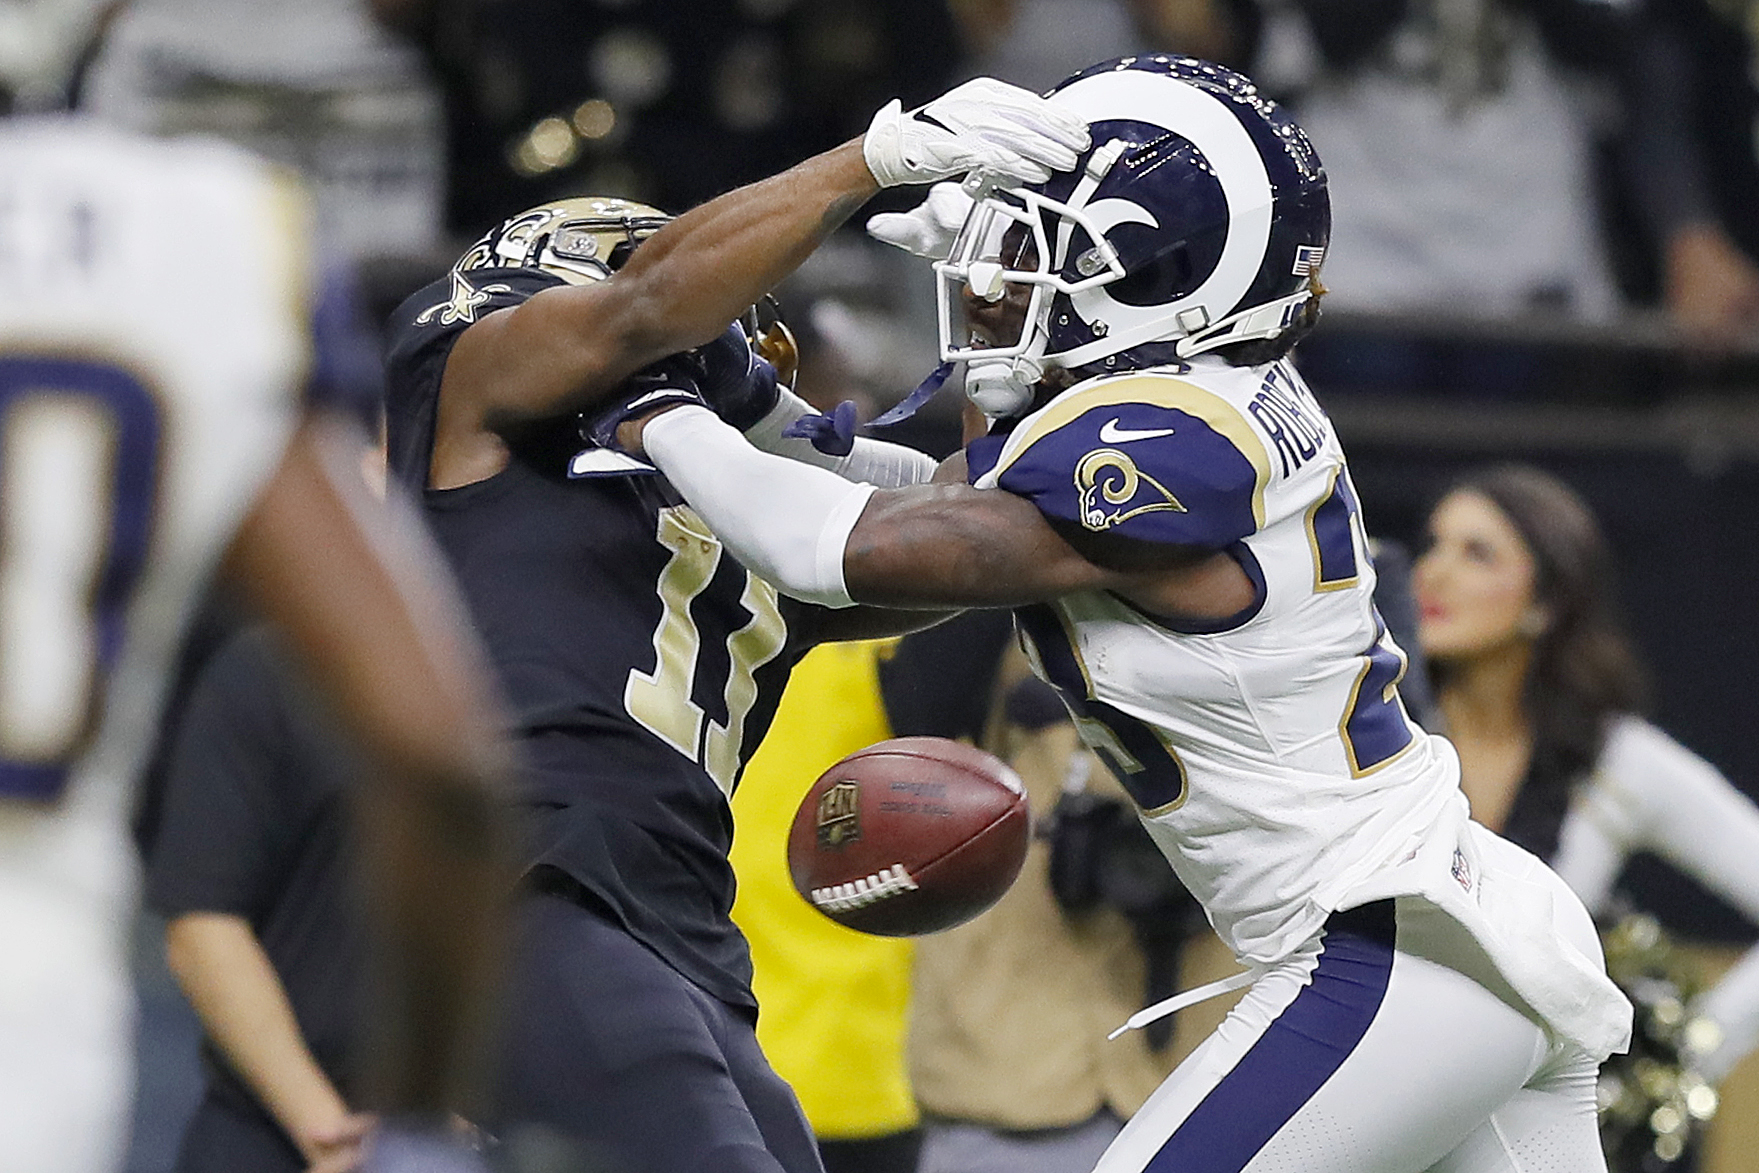 Tommylee Lewis #11 of the New Orleans Saints drops a pass broken up by Nickell Robey-Coleman #23 of the Los Angeles Rams during the fourth quarter in the NFC Championship game at the Mercedes-Benz Superdome on January 20, 2019 in New Orleans, Louisiana. (Credit: Kevin C. Cox/Getty Images)